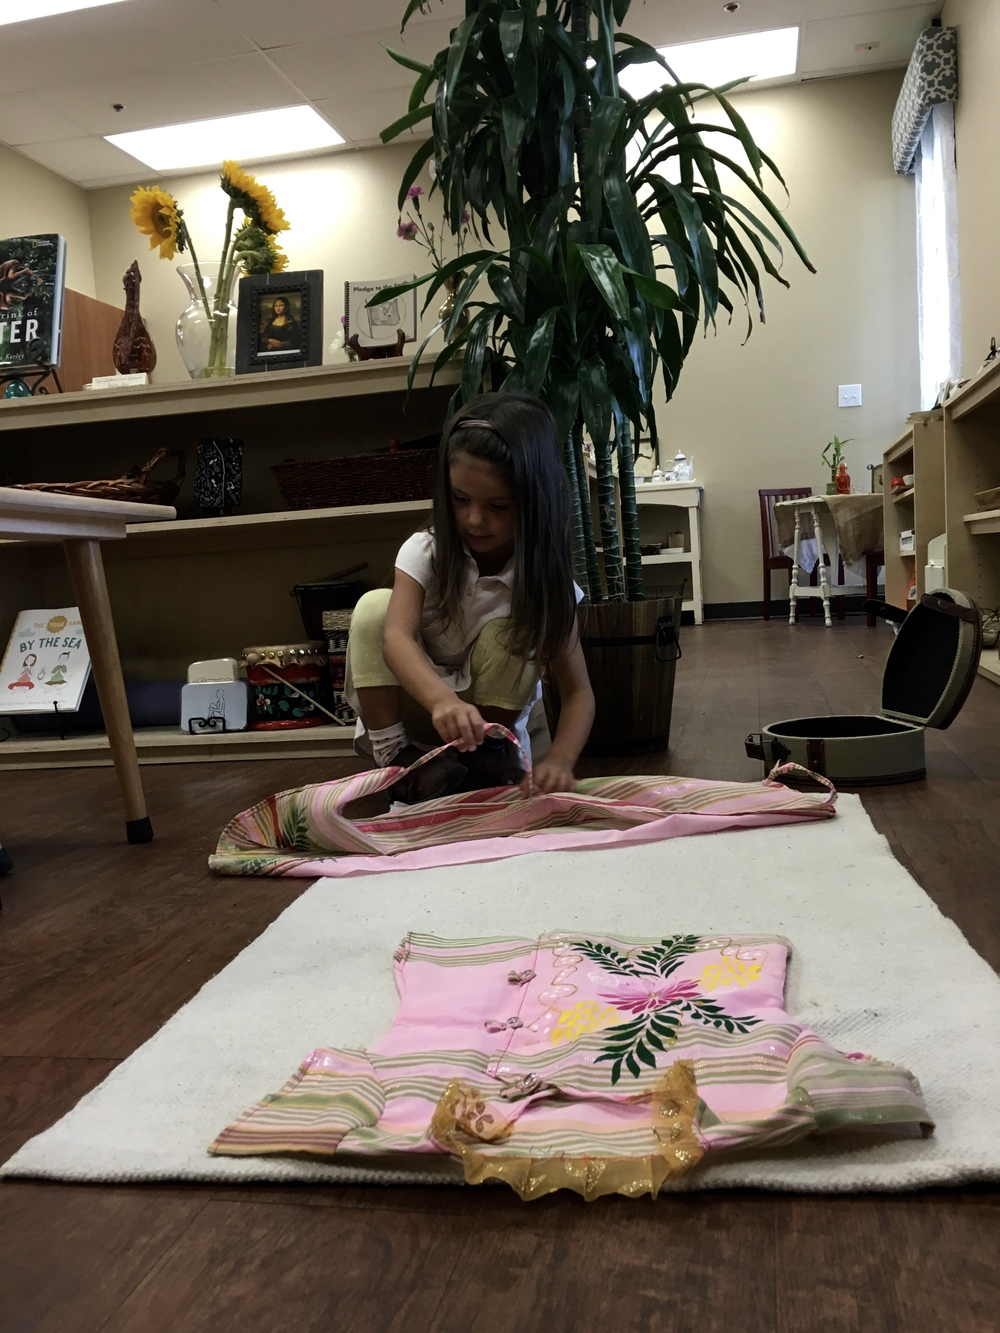 Folding a child's size traditional Indian Sari.